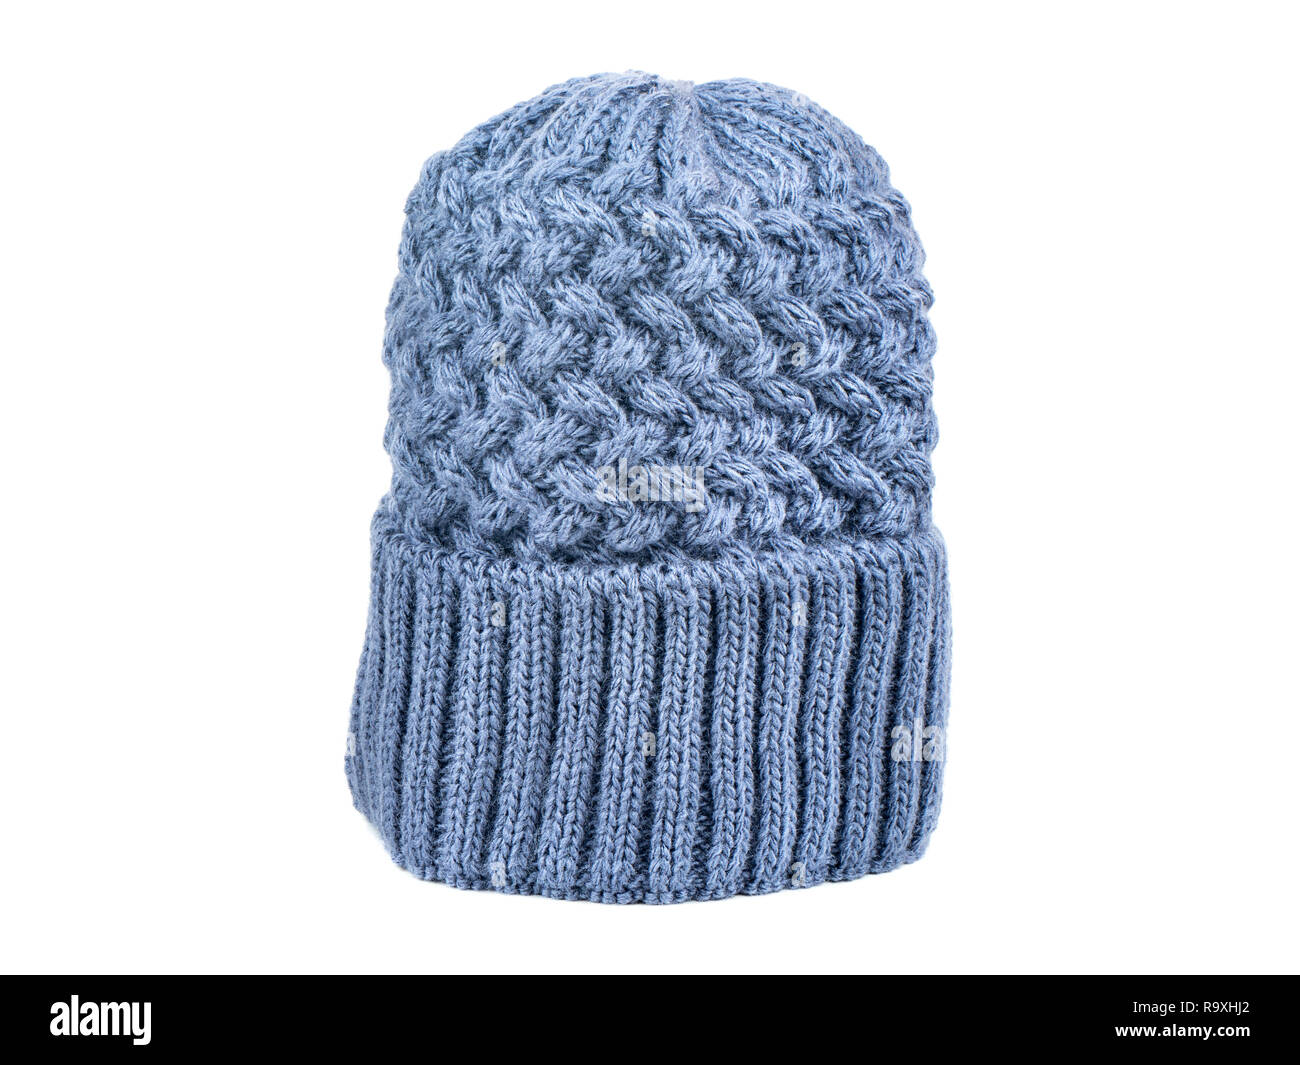 b67ea7eec77 Blue knitted winter womens hat on white background Stock Photo ...